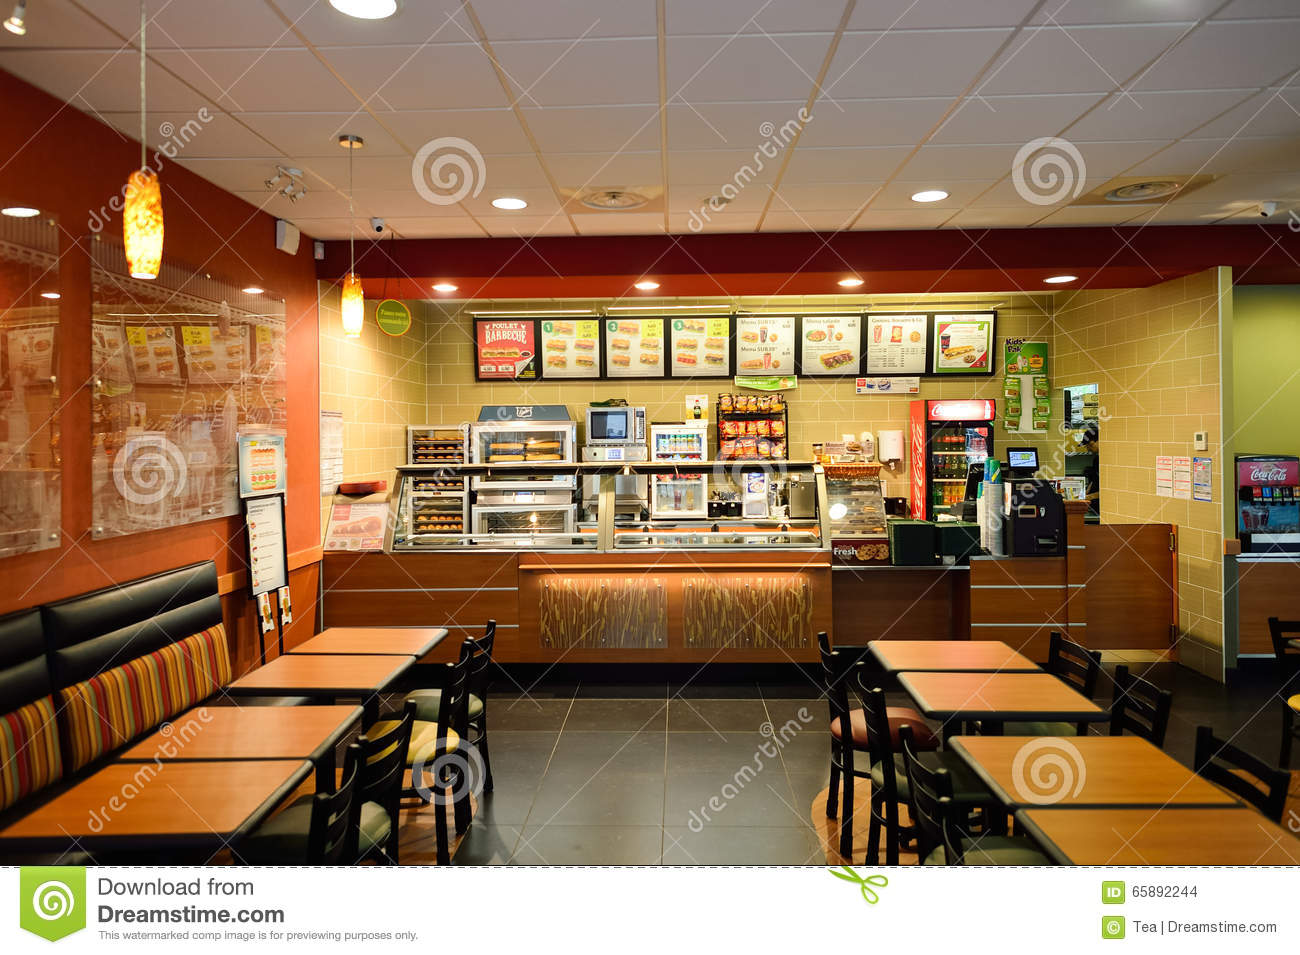 Subway fast food restaurant interior editorial stock image